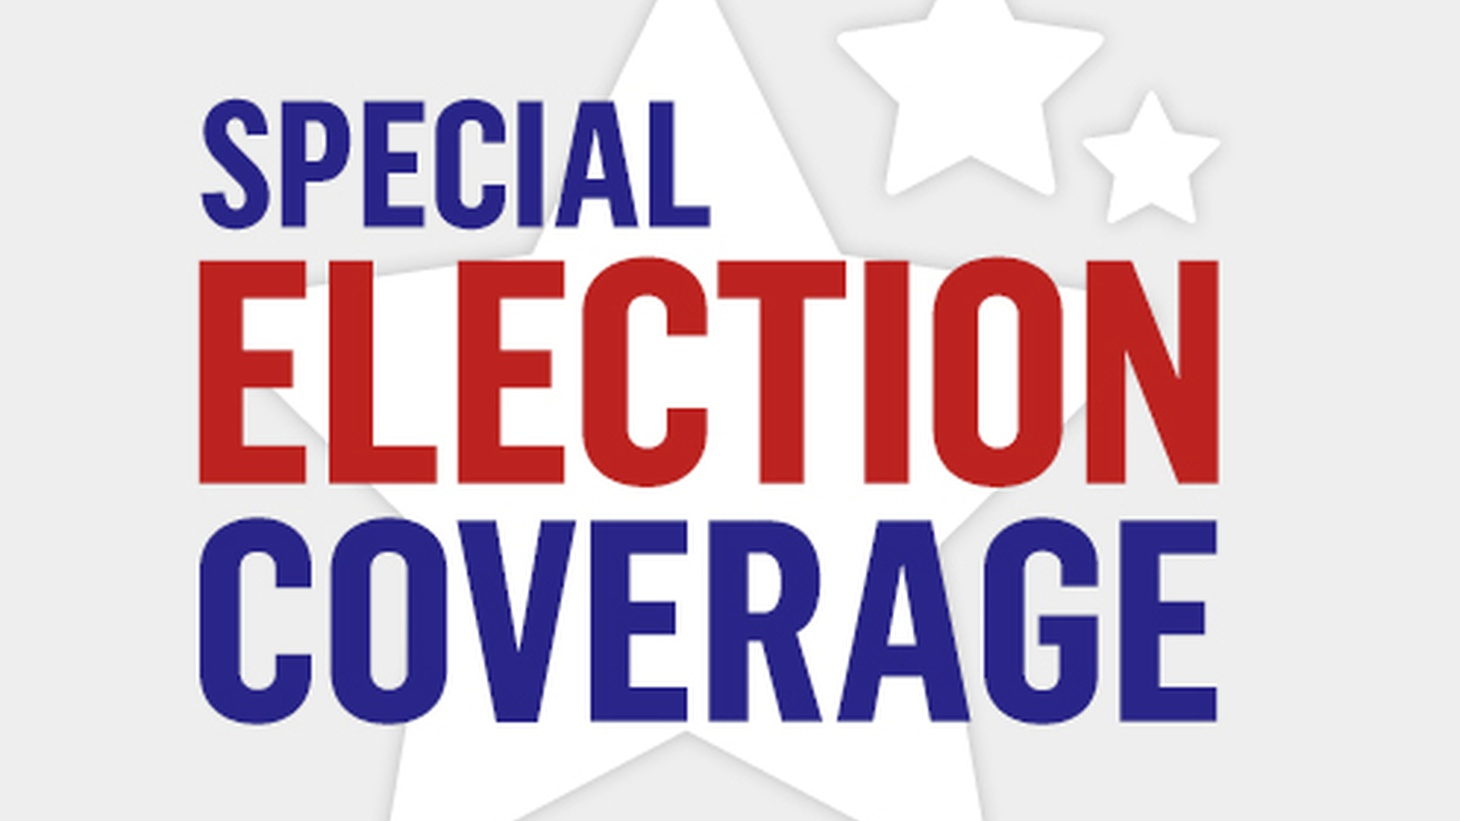 On Tuesday, March 8, KCRW presents special election coverage of primaries and caucuses in Hawaii (GOP), Idaho (GOP), Michigan, and Mississippi. Airs 7-8pm